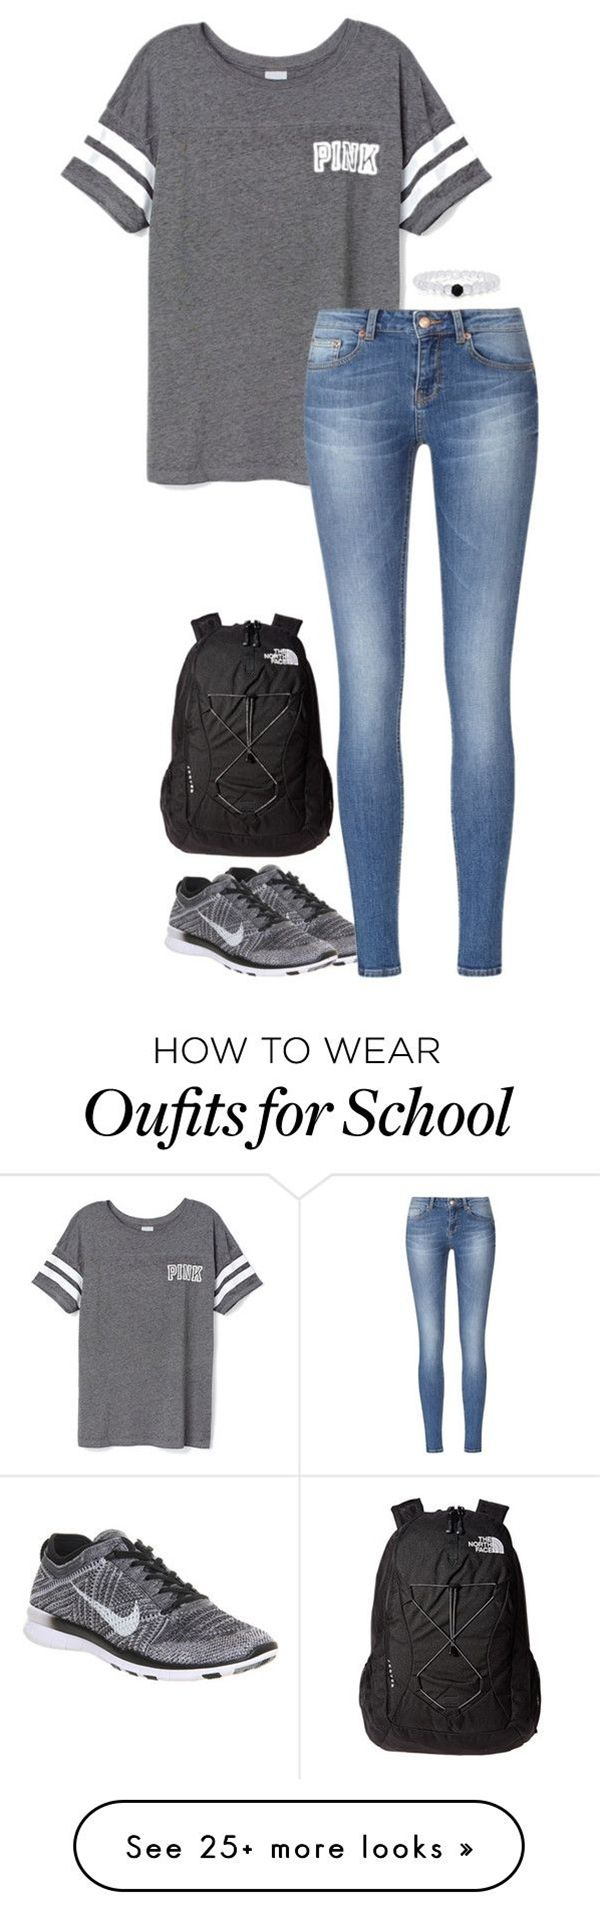 school today outfit